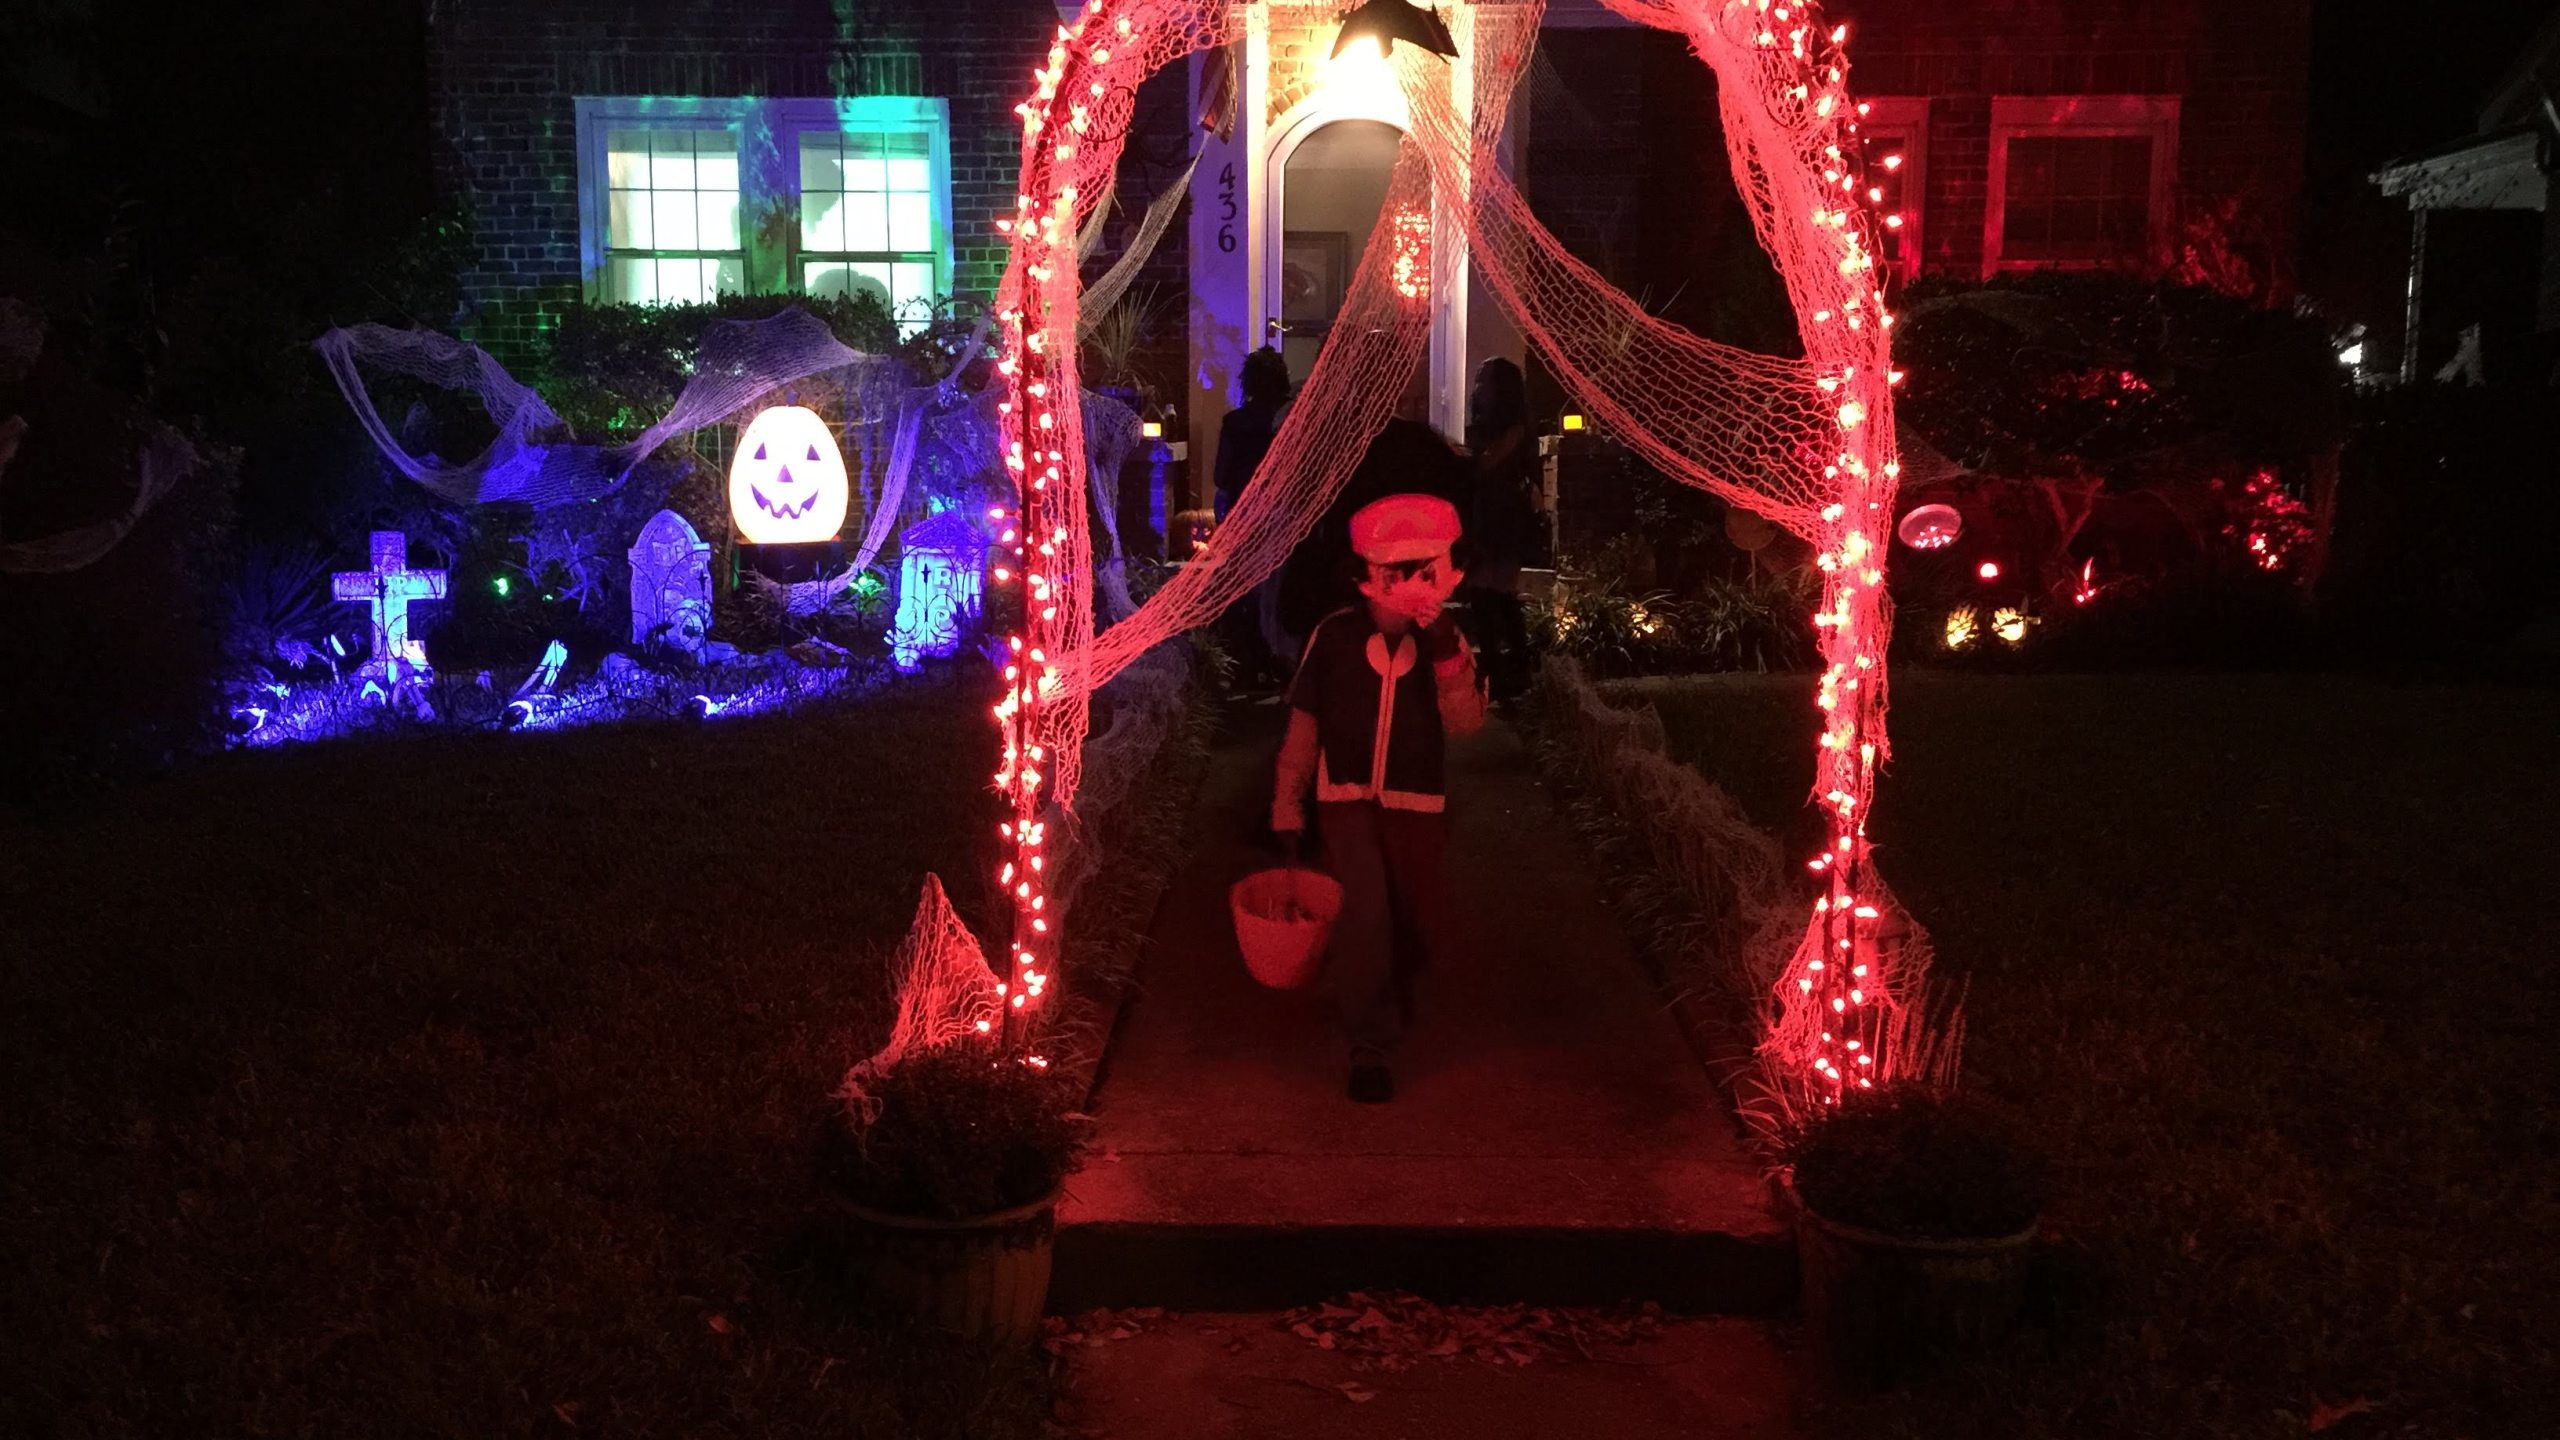 Halloween 2020 Hampton Roads Local Trick or Treat Times, Laws, and Guidelines